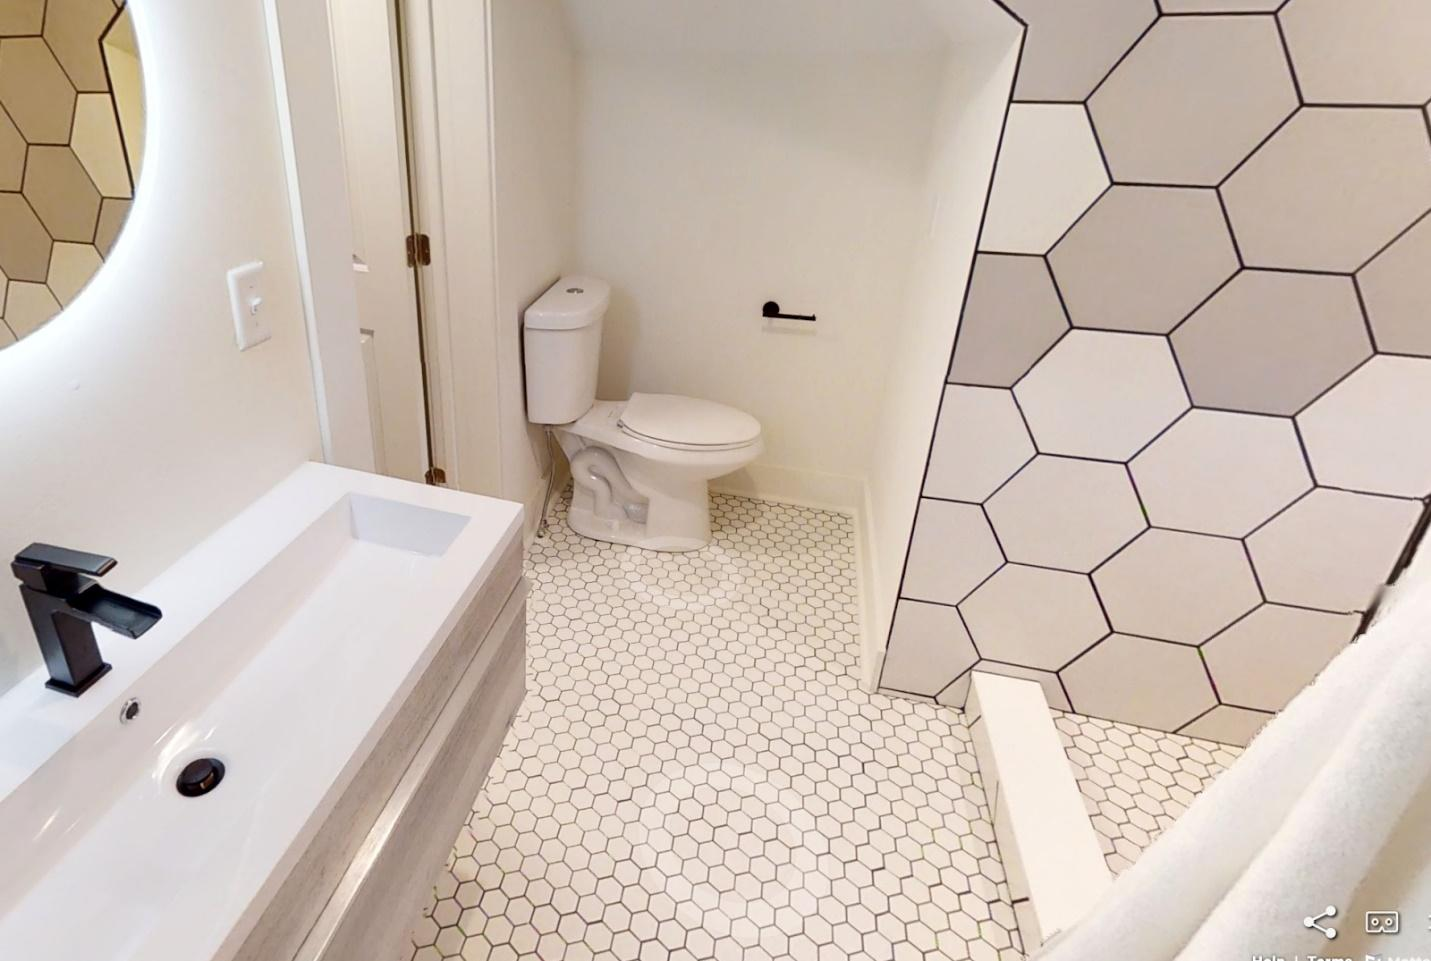 bathroom with toilet and tub